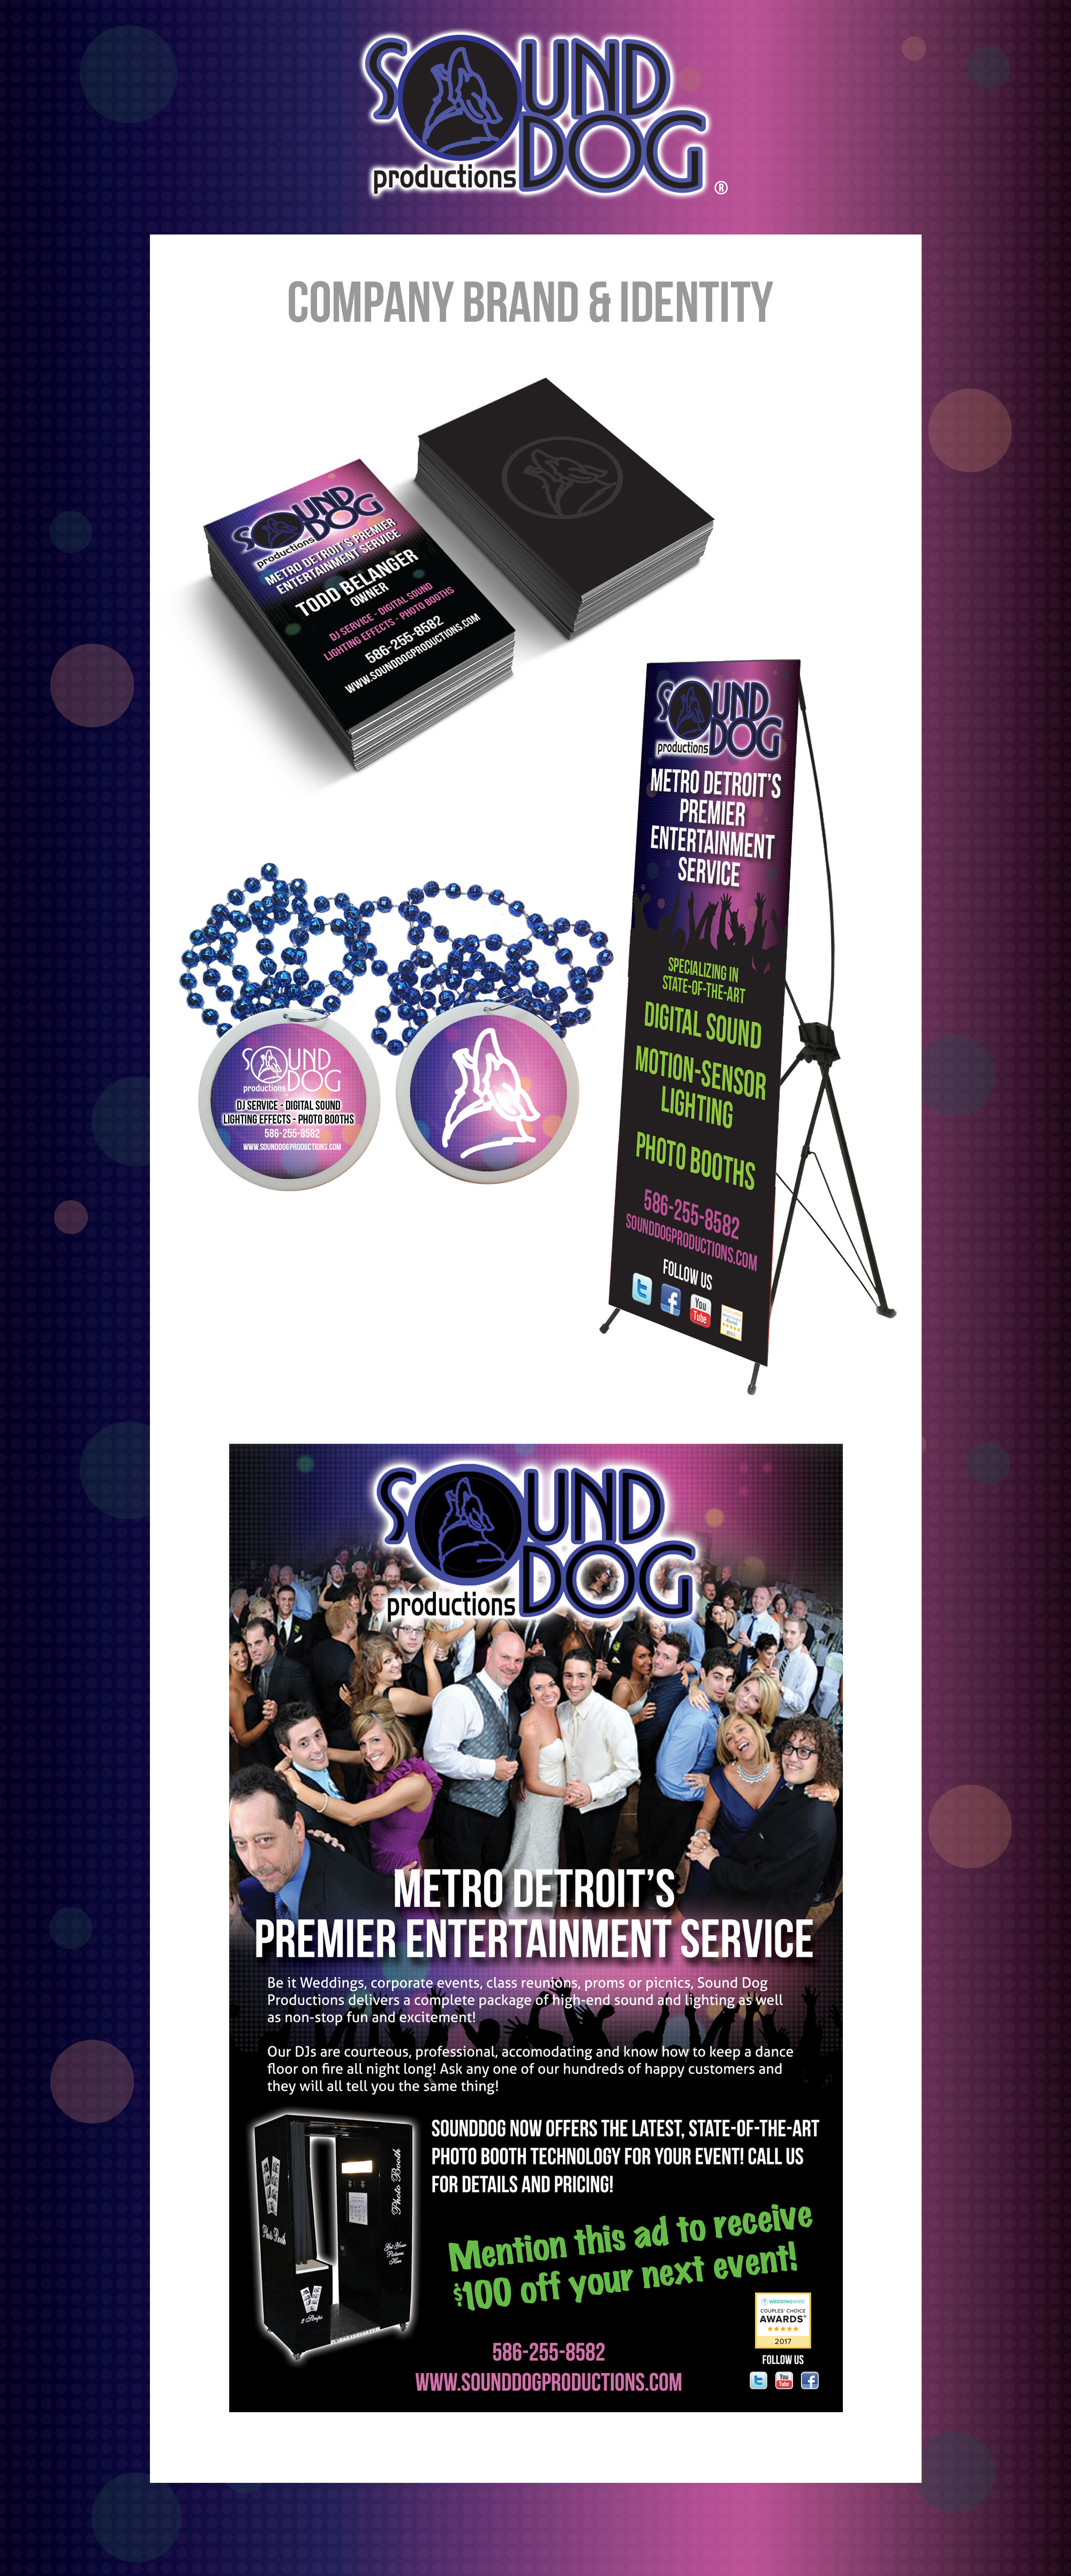 SoundDog Productions - Printed Marketing Collateral